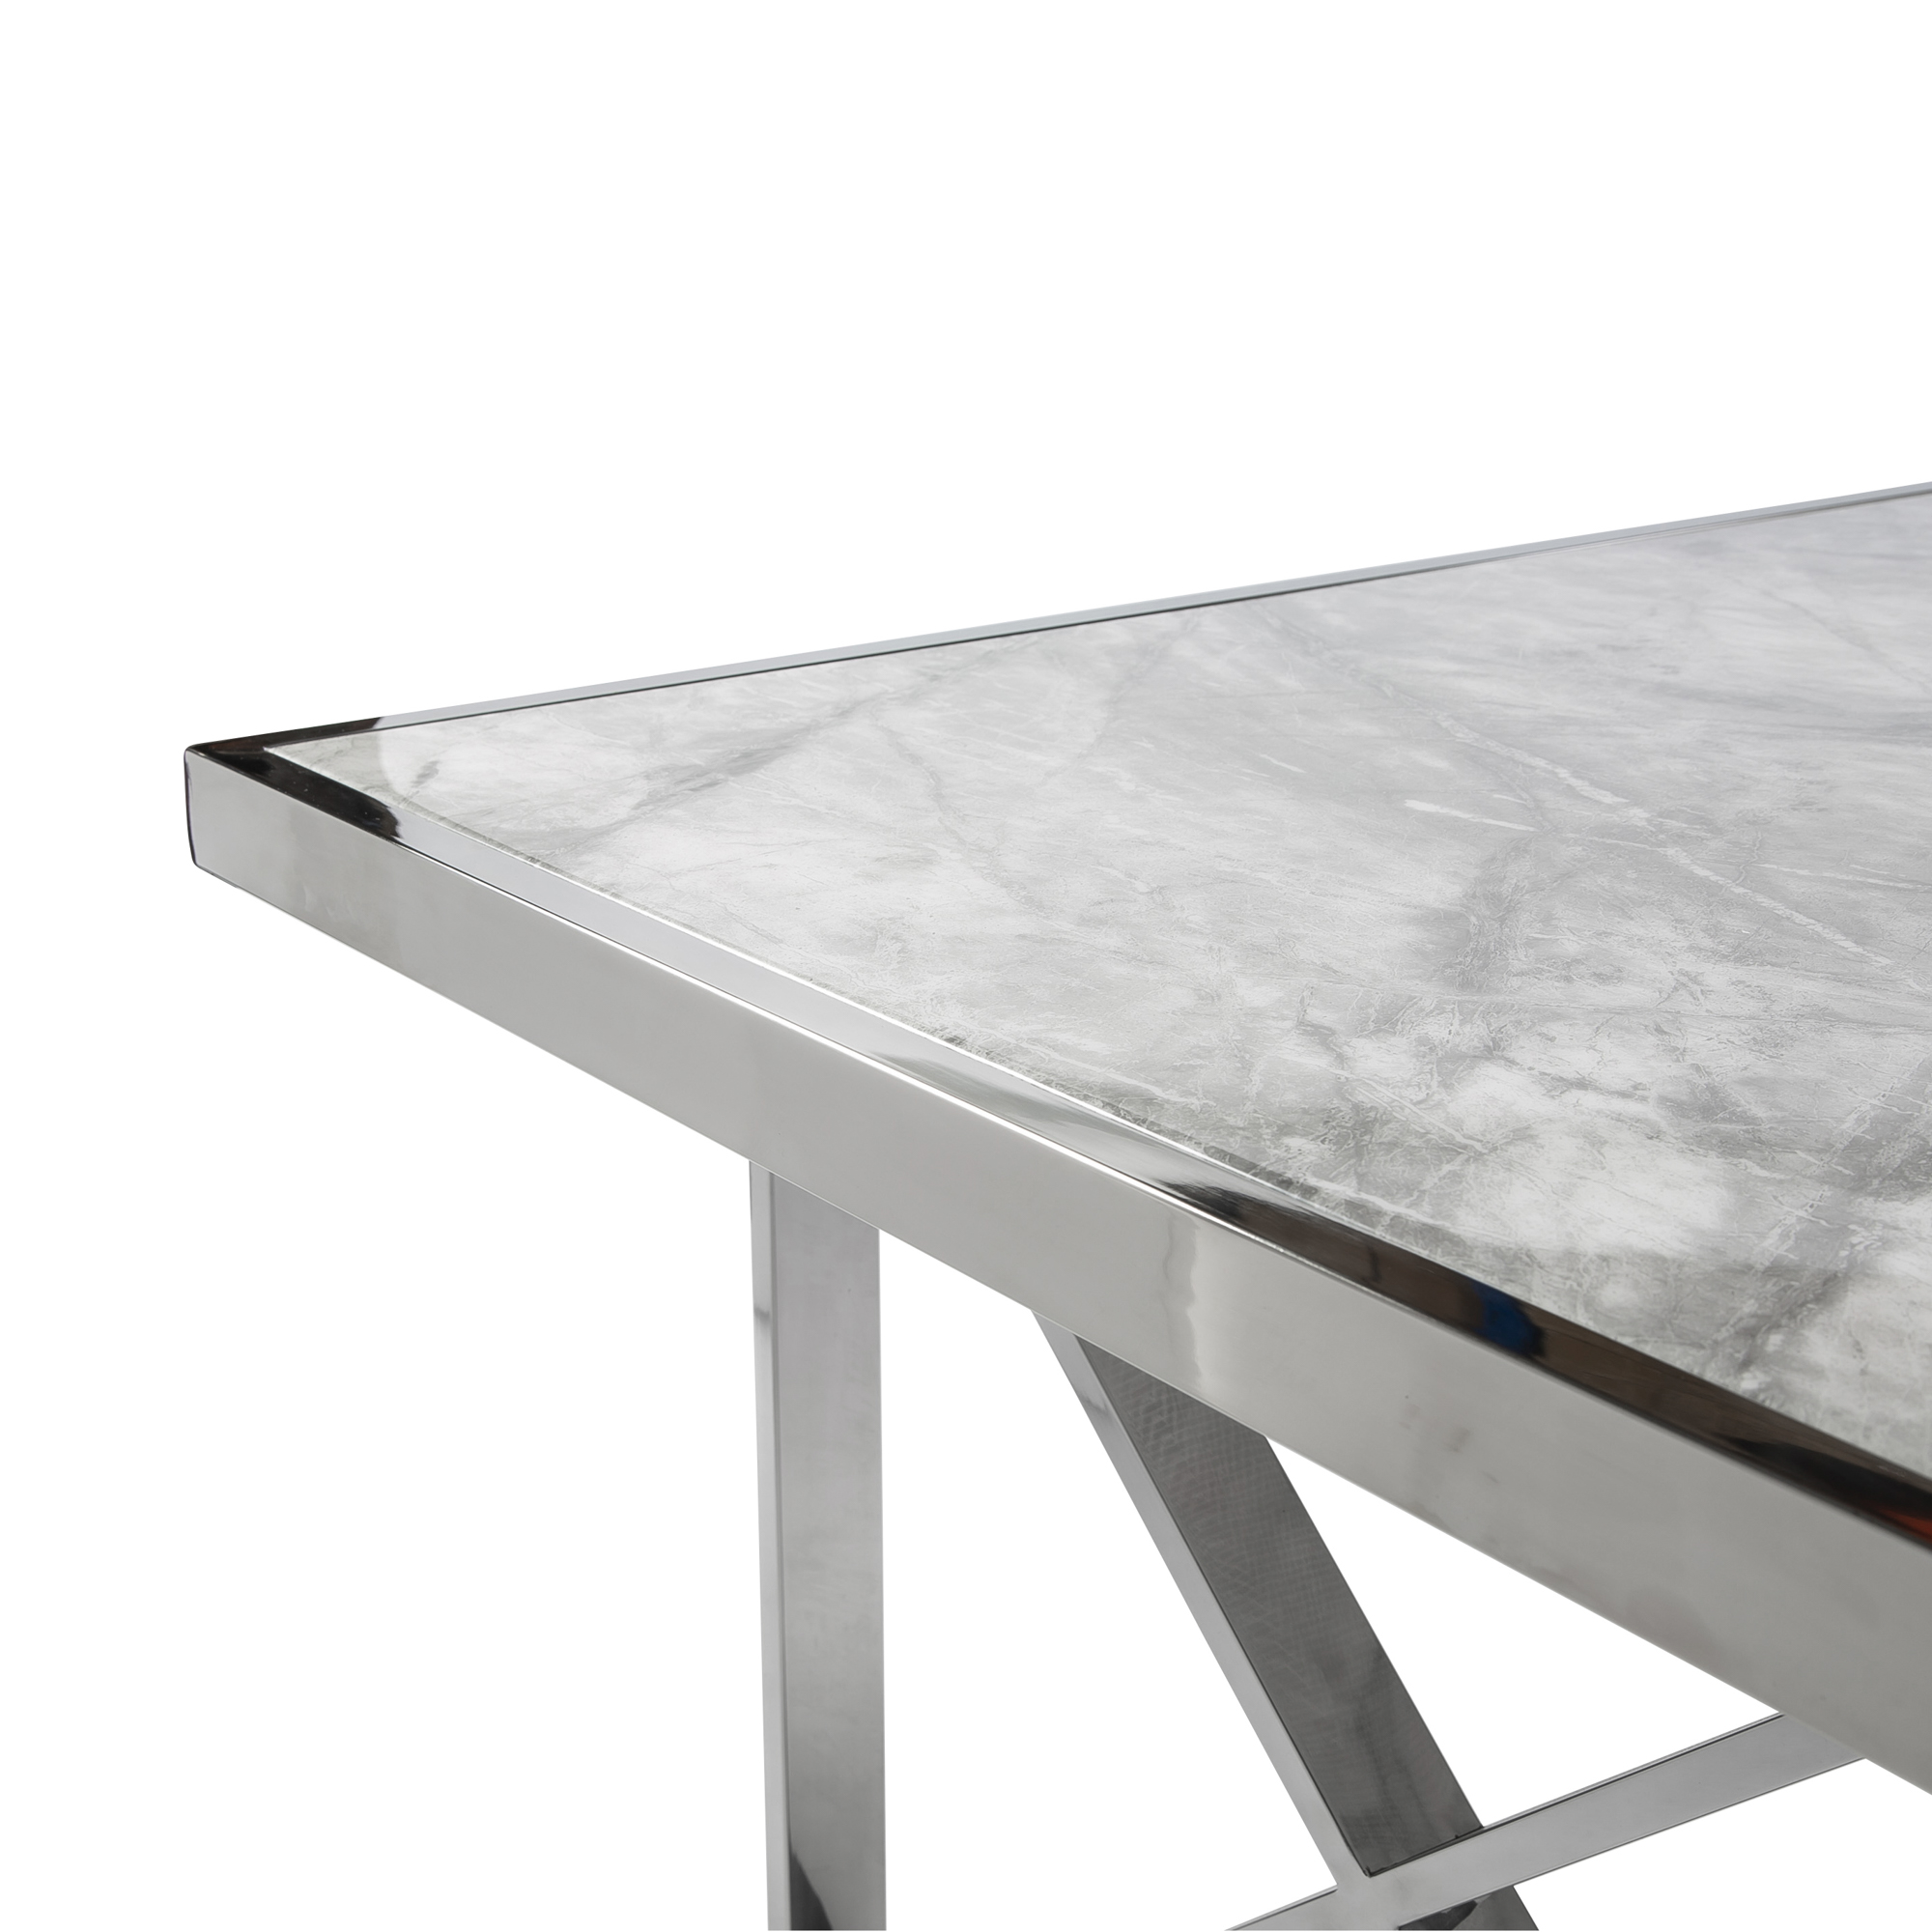 Marvel at our Marble: Our Grey Marble Furniture Collection